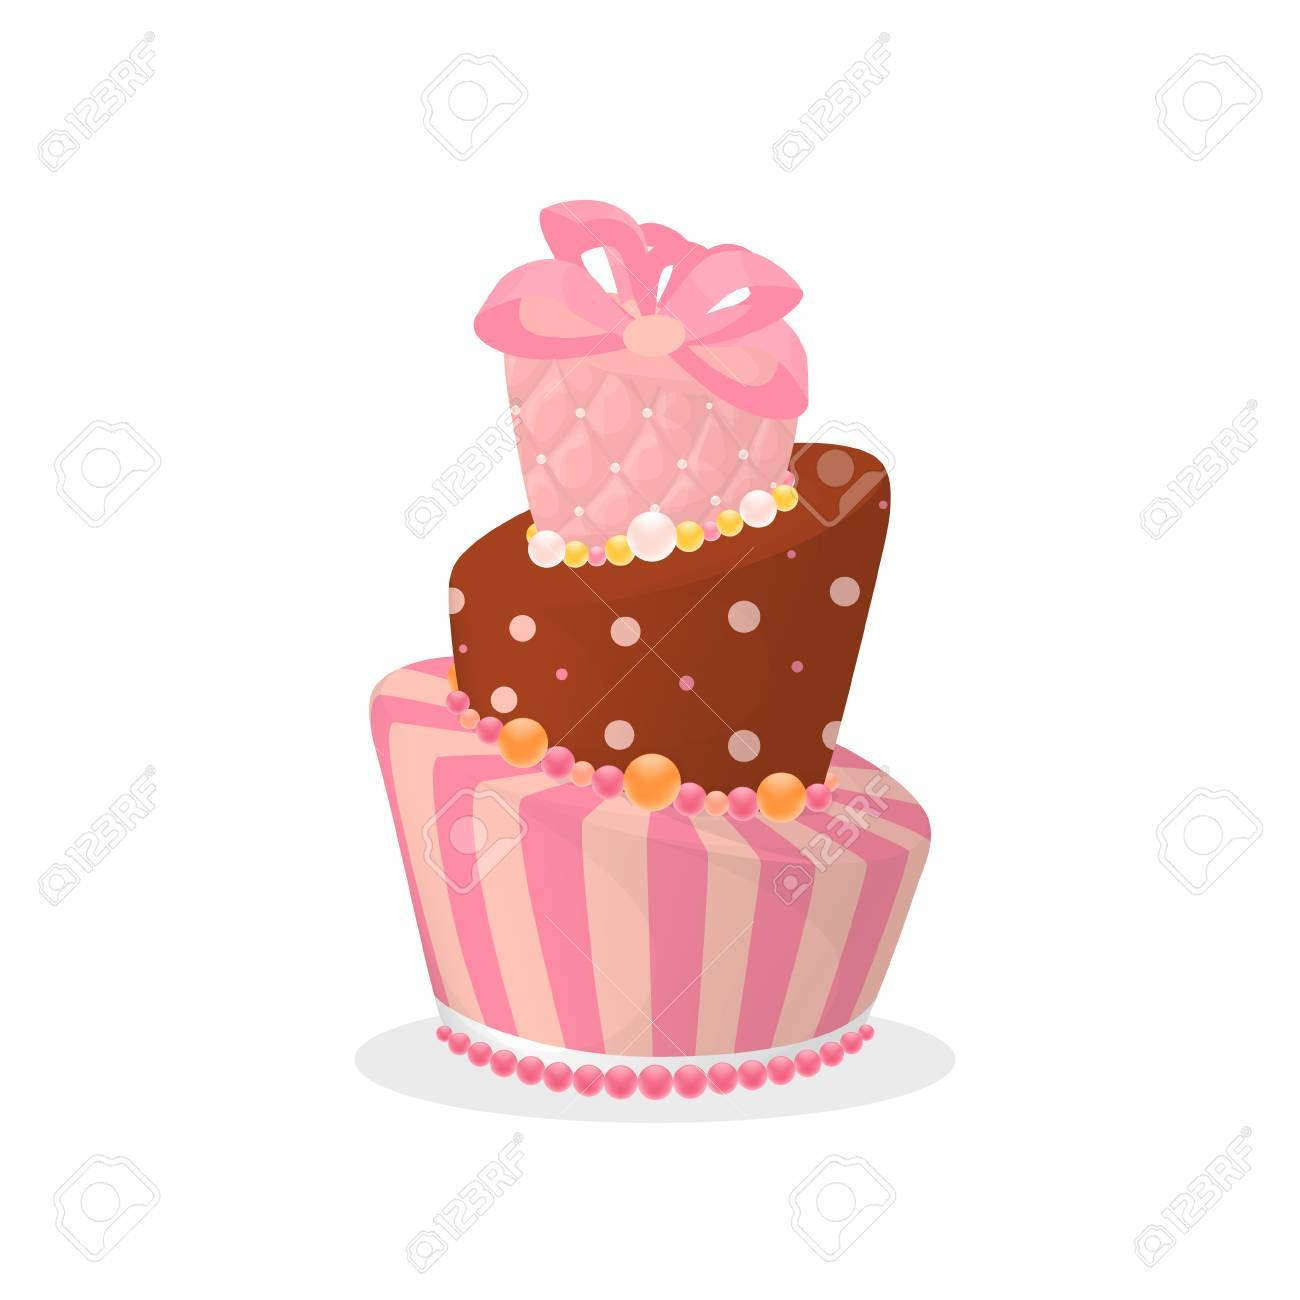 Isolated Birthday Cake On White Background Big Pink Chocolate With Sprinkles And Bow